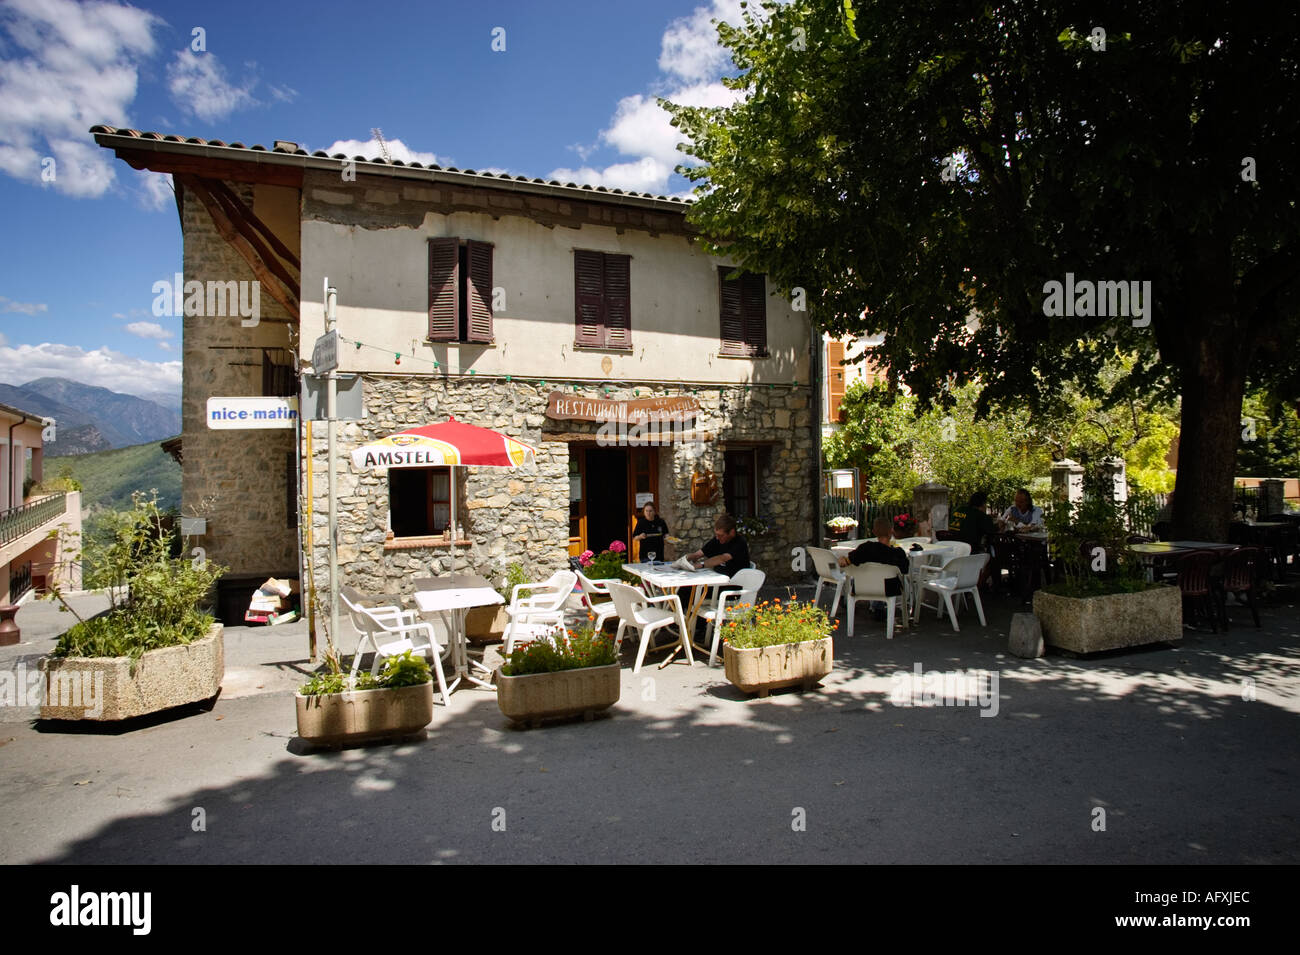 Restaurant cafe bar in the village square at Clans in the Alpes Maritimes, Provence, France - Stock Image